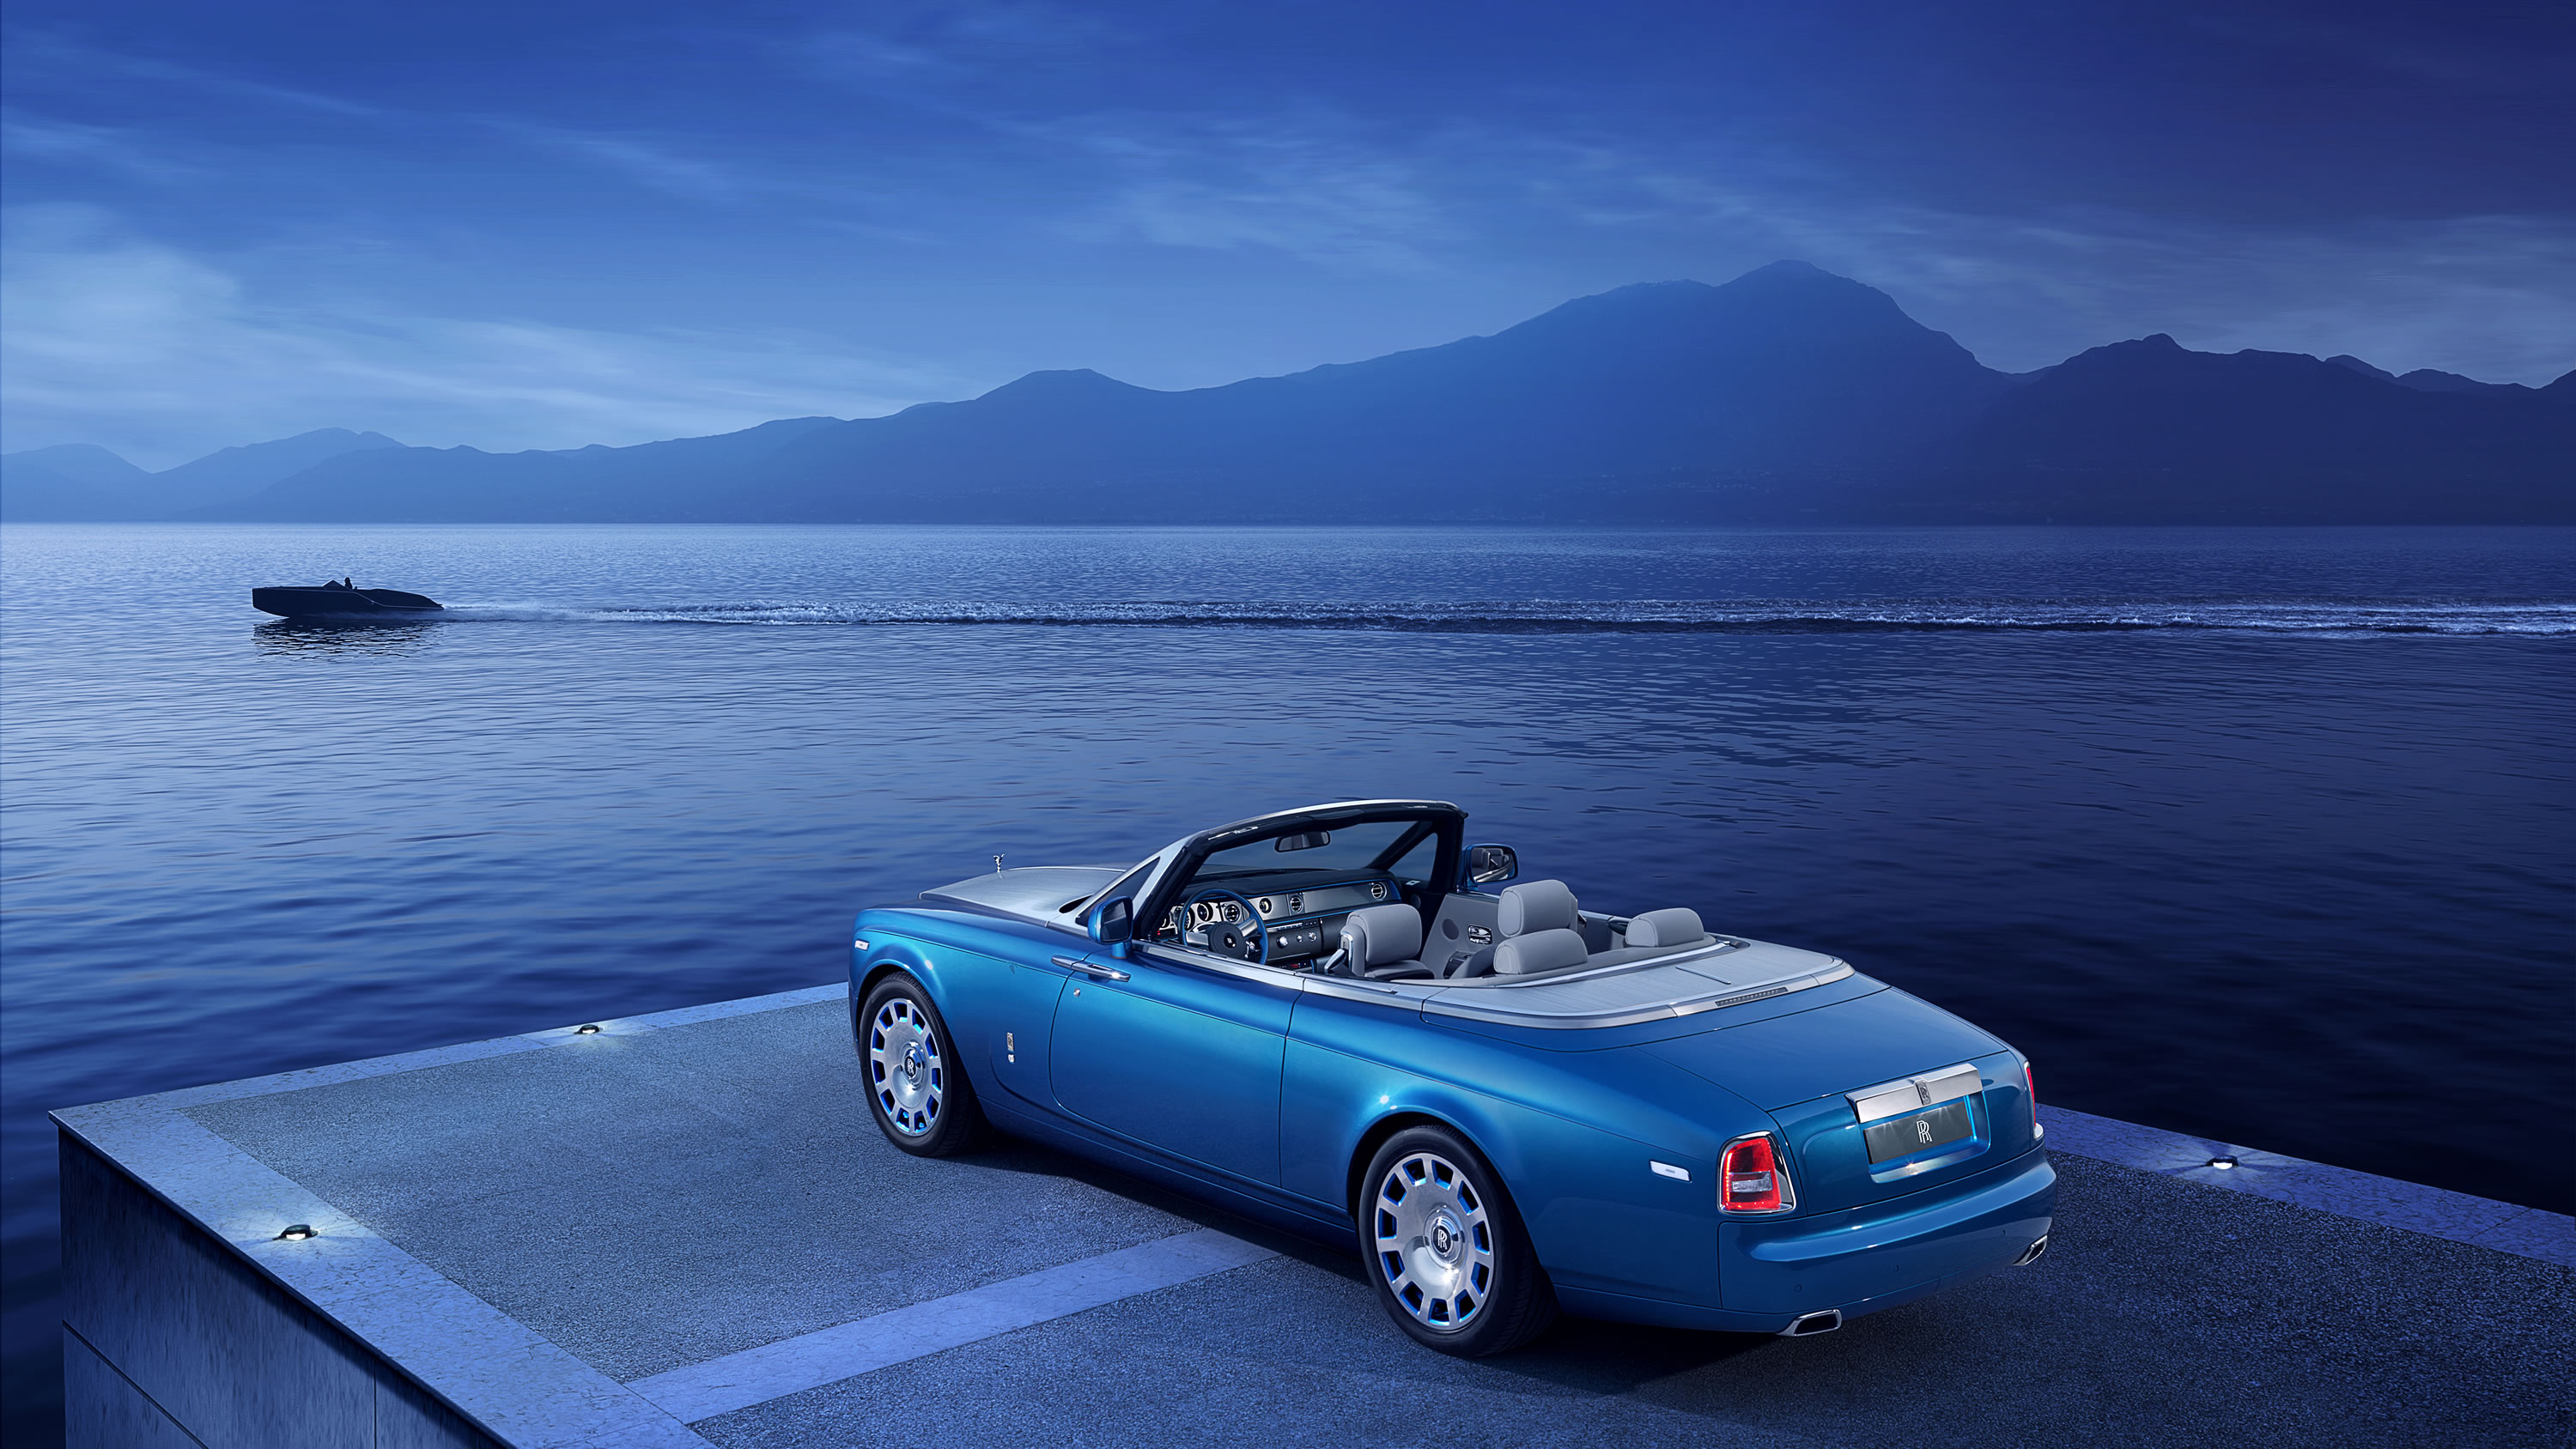 The 2015 Rolls Royce Phantom Drophead Coupe Waterspeed Collection Is Finished In A Specially Developed